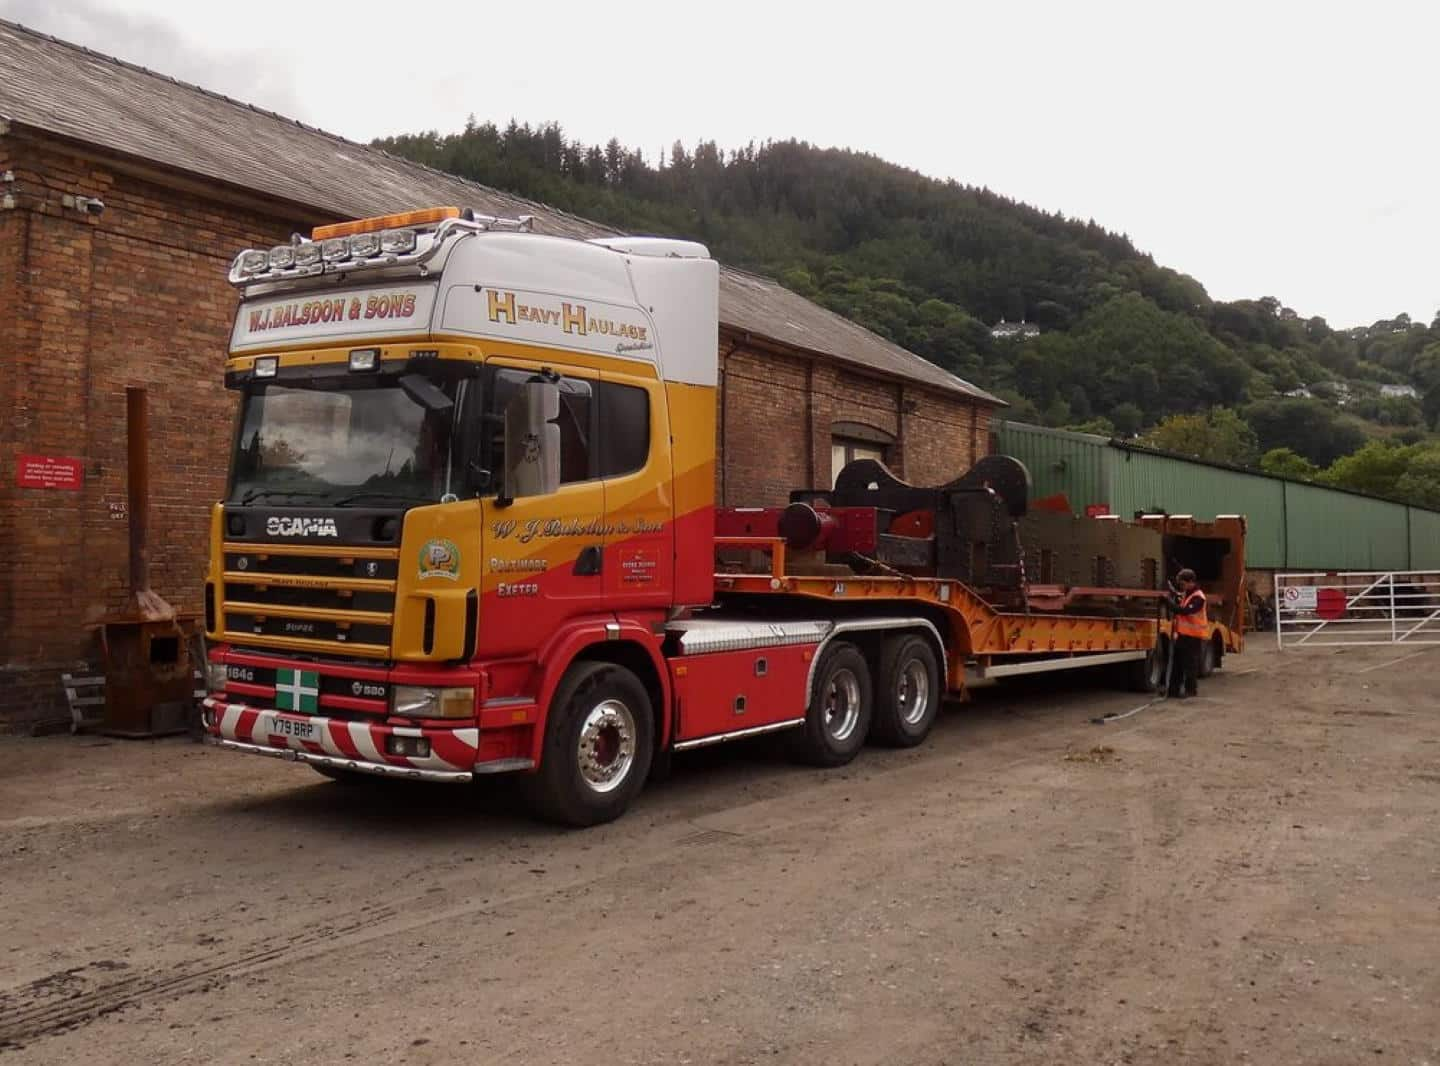 4709's Frame Loaded Up Ready for Journey to Leaky Finders // Credit The 4709 Group